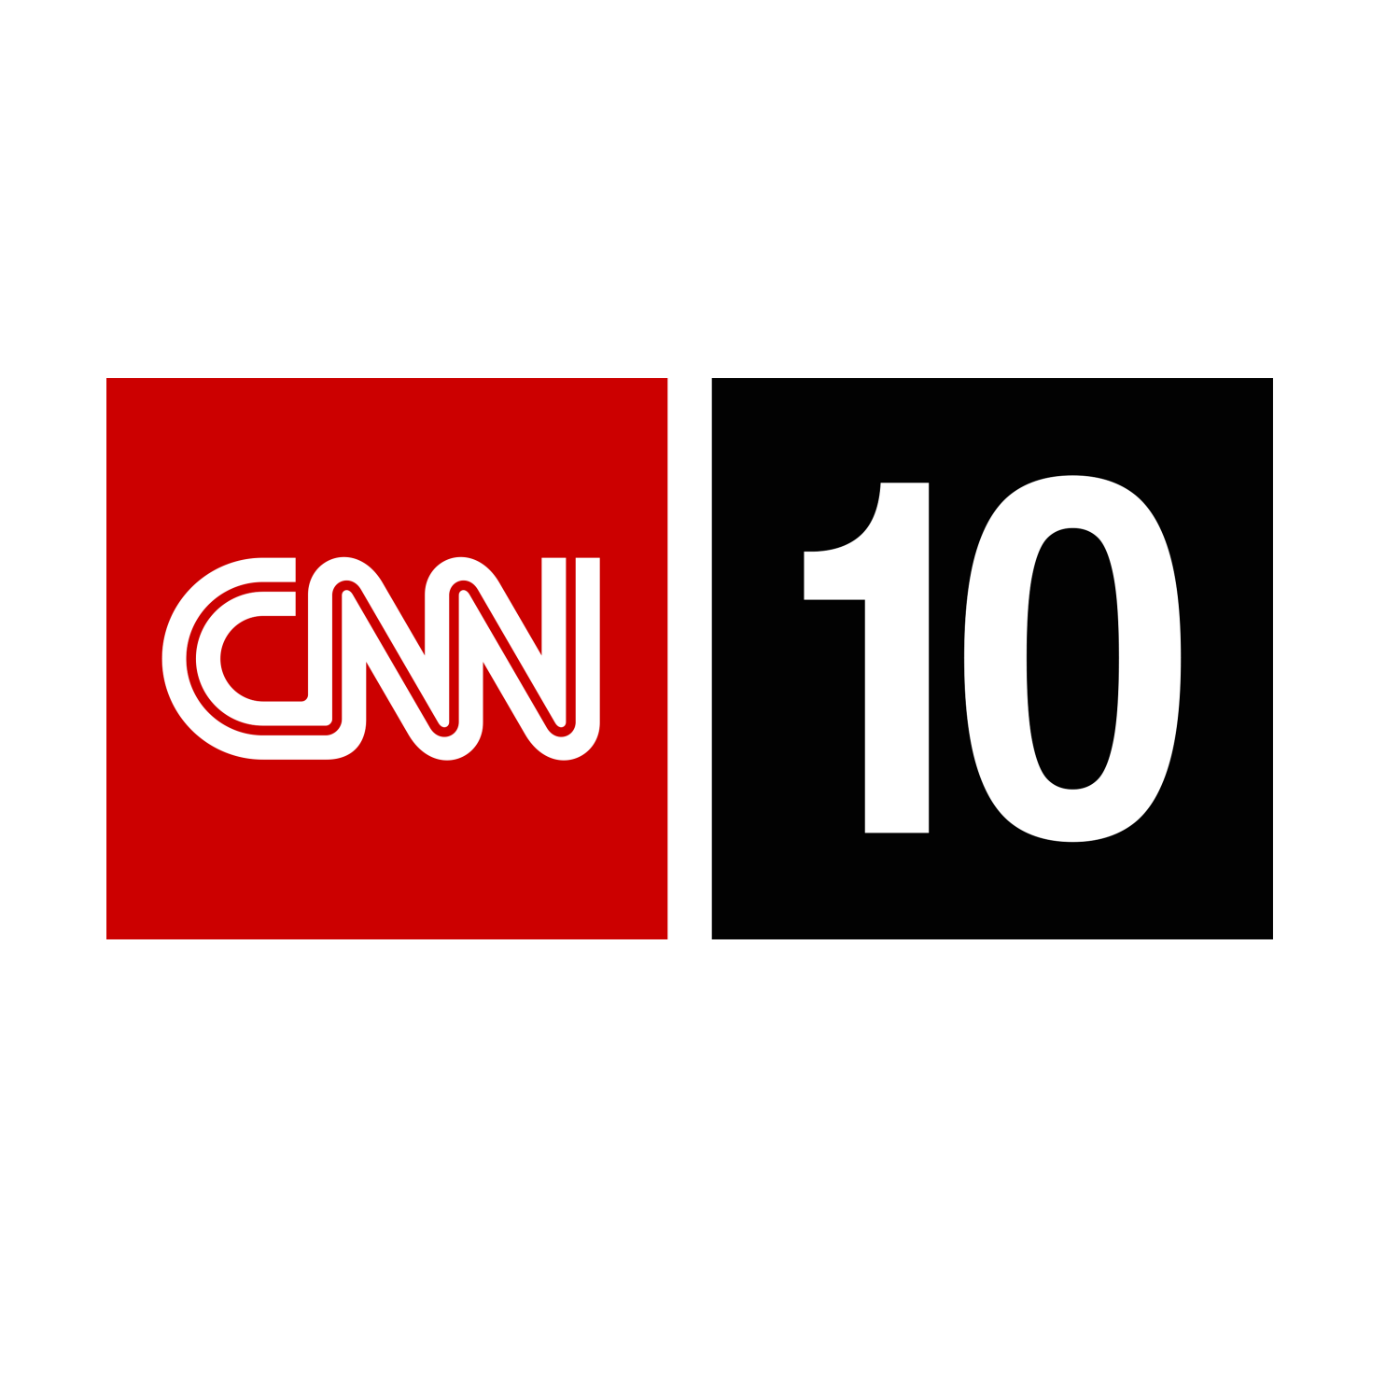 CNN Student News - May 30, 2013